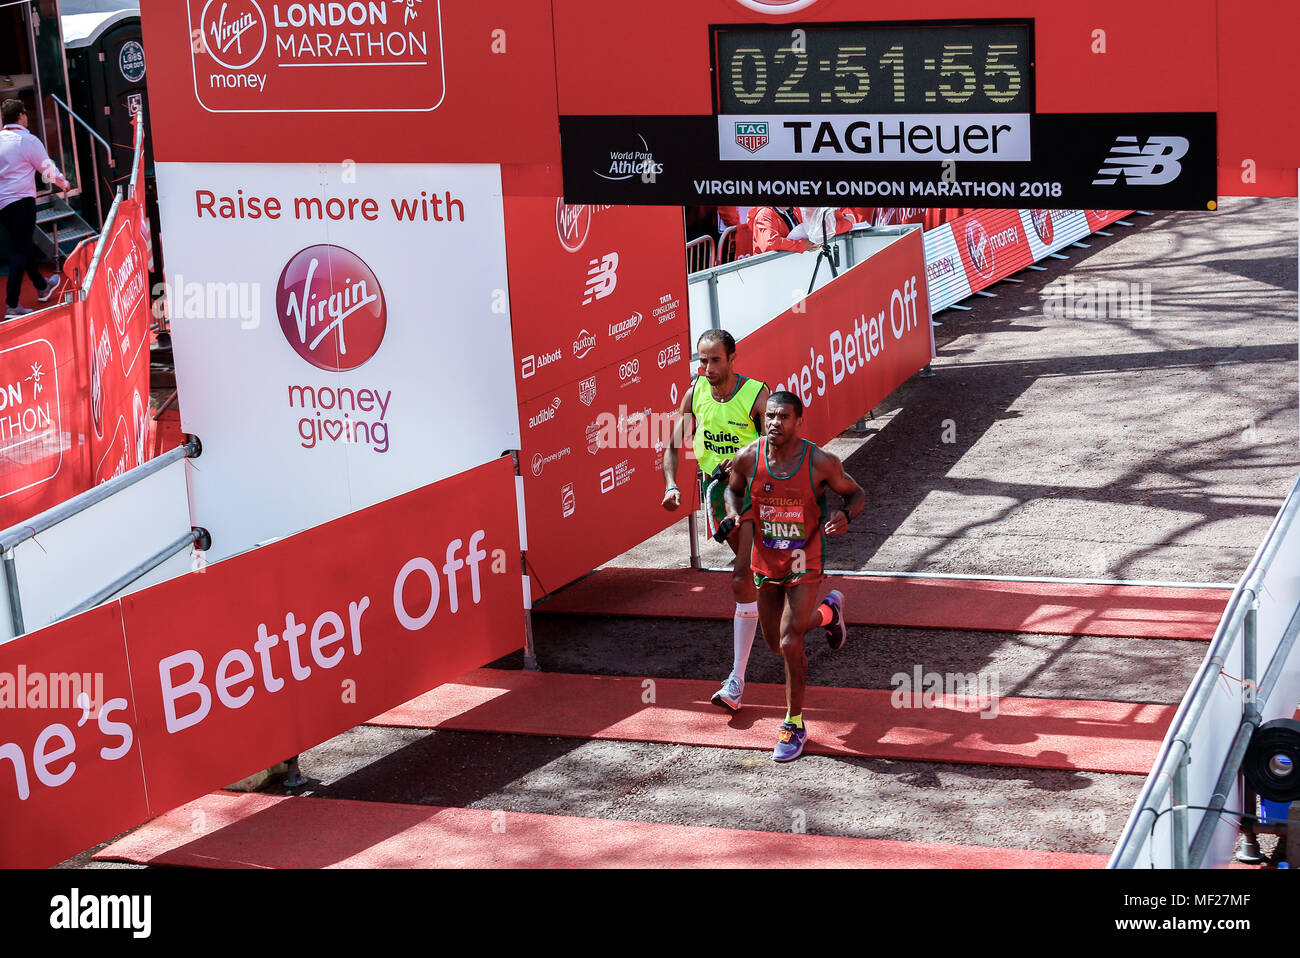 Jorge PINA crosses the finish line in Para-athletics Marathon World Cup for men para-athletes with visual impairment who run with a guide during the Virgin Money London Marathon in London, England on April 22, 2018. - Stock Image